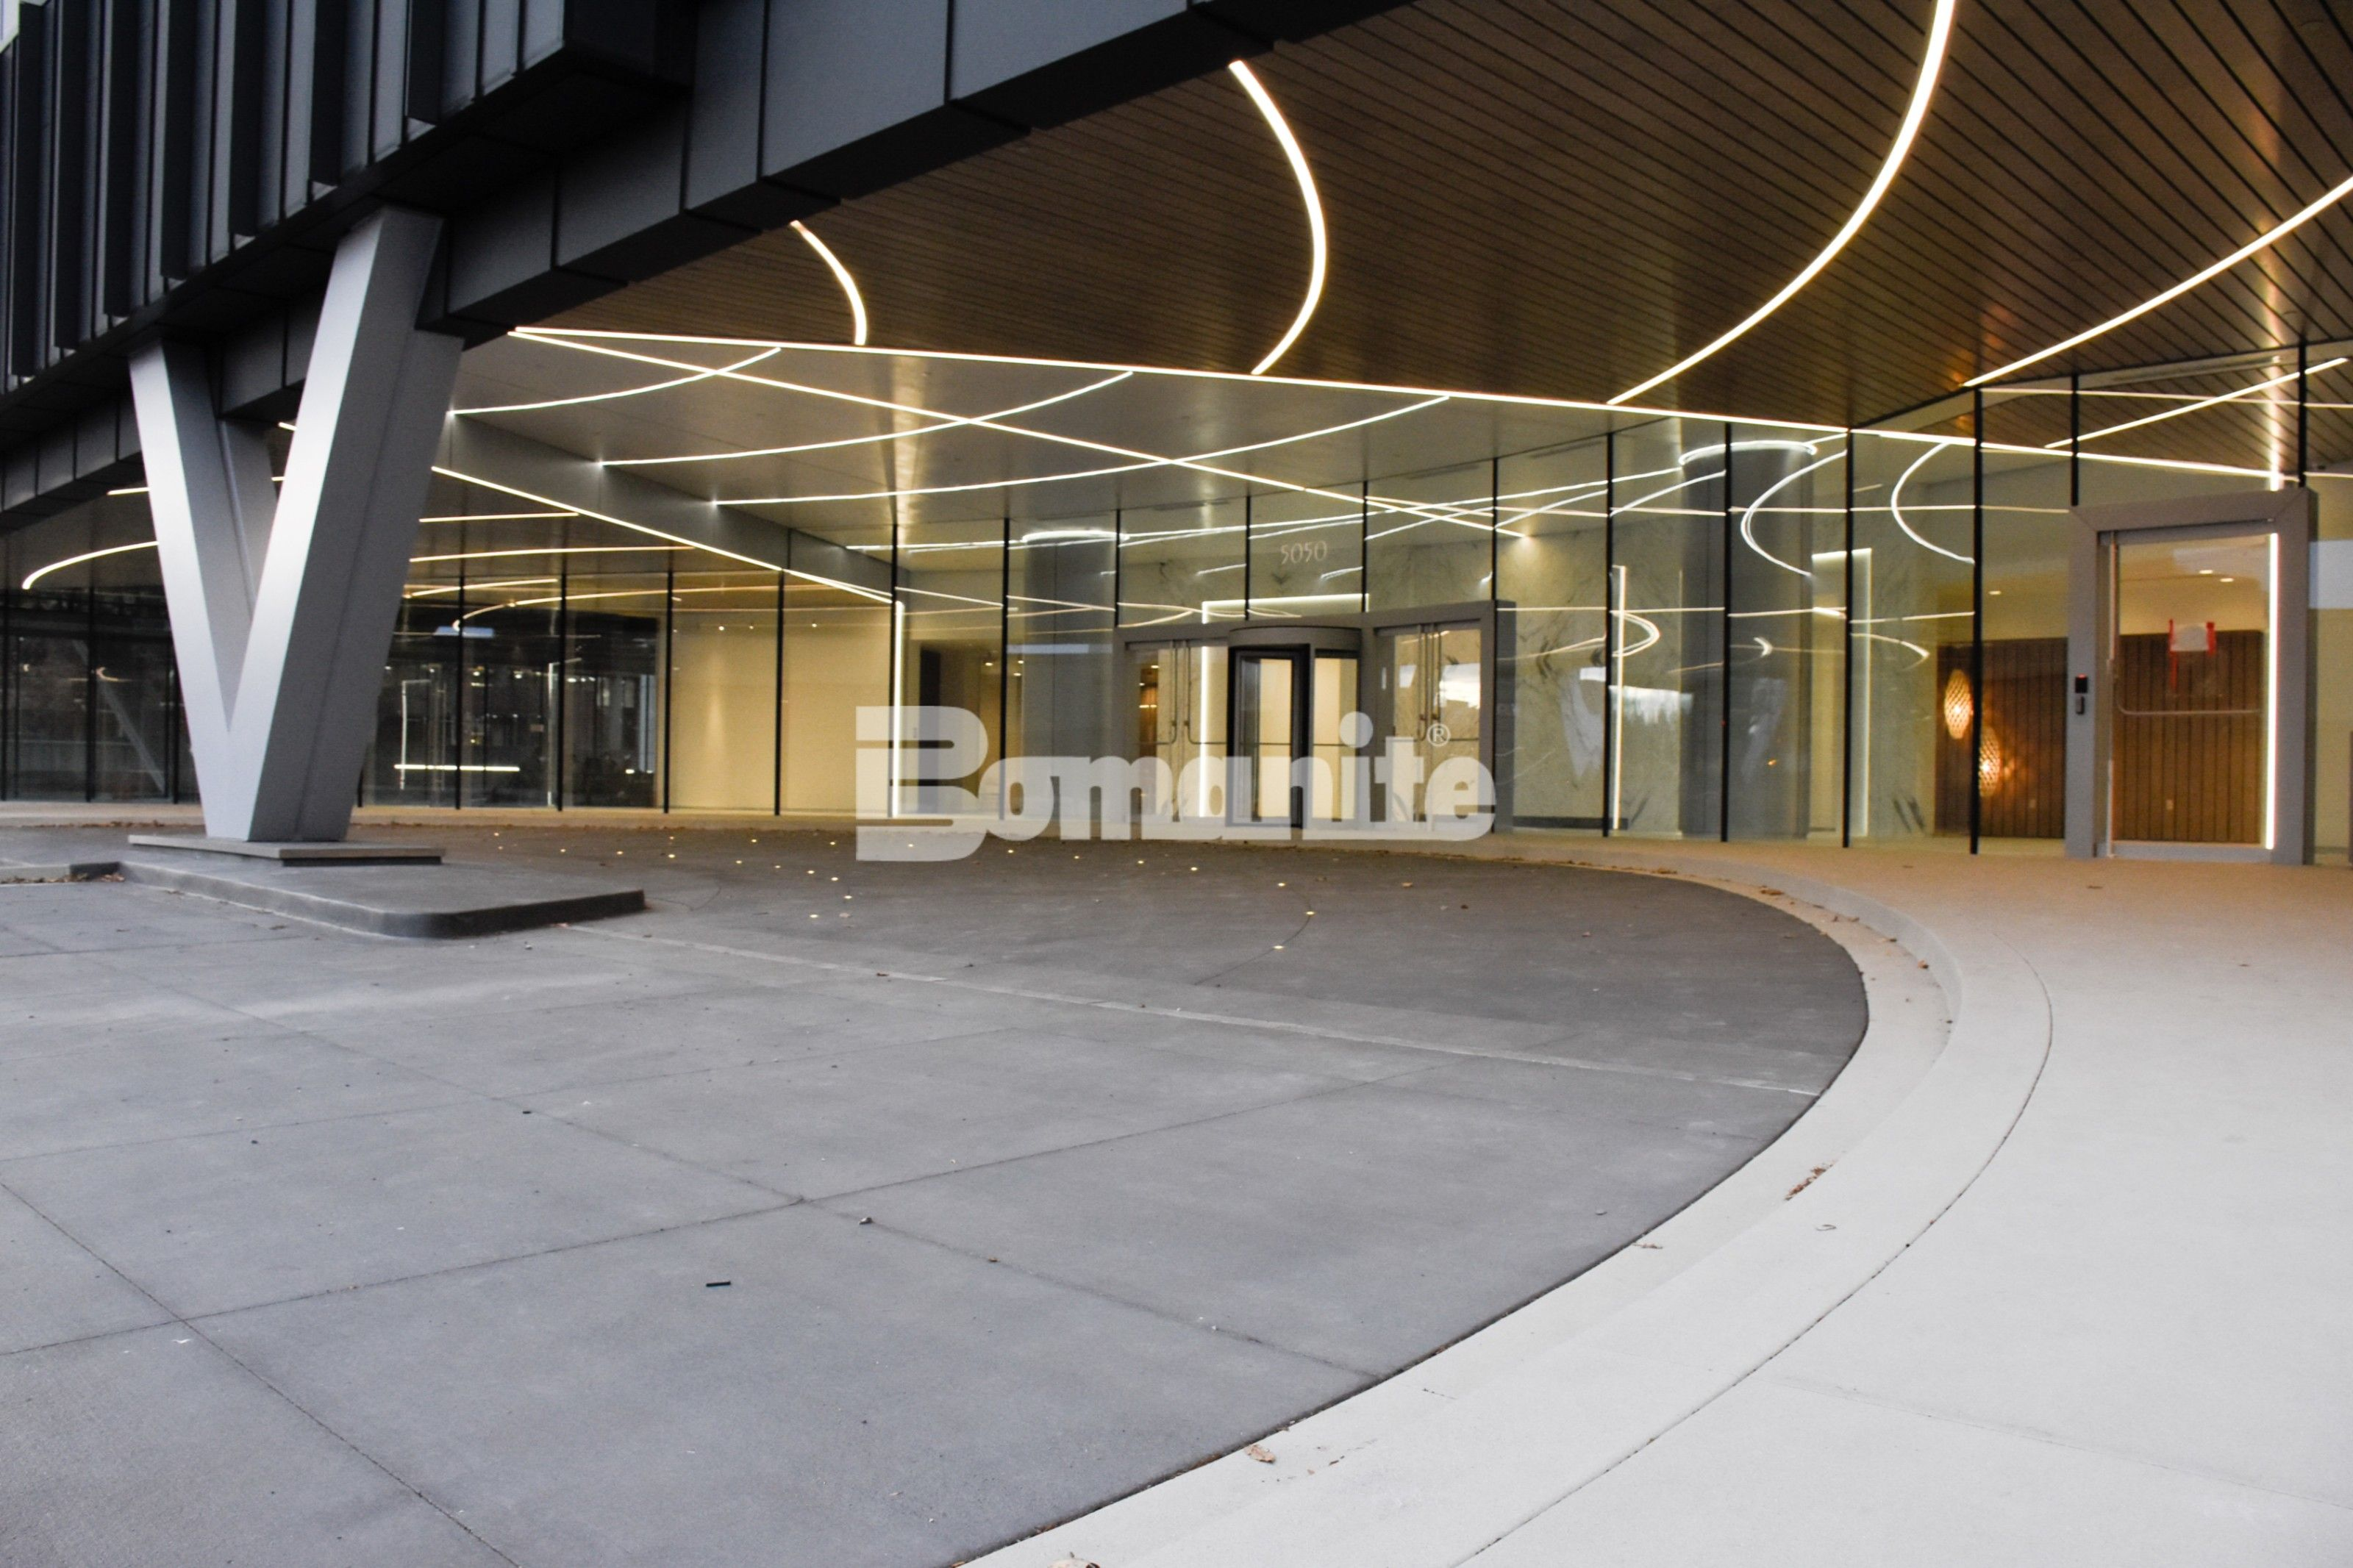 Porte cochere of the 50 Fifty DTC building incorporates Bomanite Sandscape Refined Exposed Aggregate for the decorative concrete curbs and walkways as well and was installed by Colorado Hardscapes in Denver, CO to bring the Nautical Design to life.